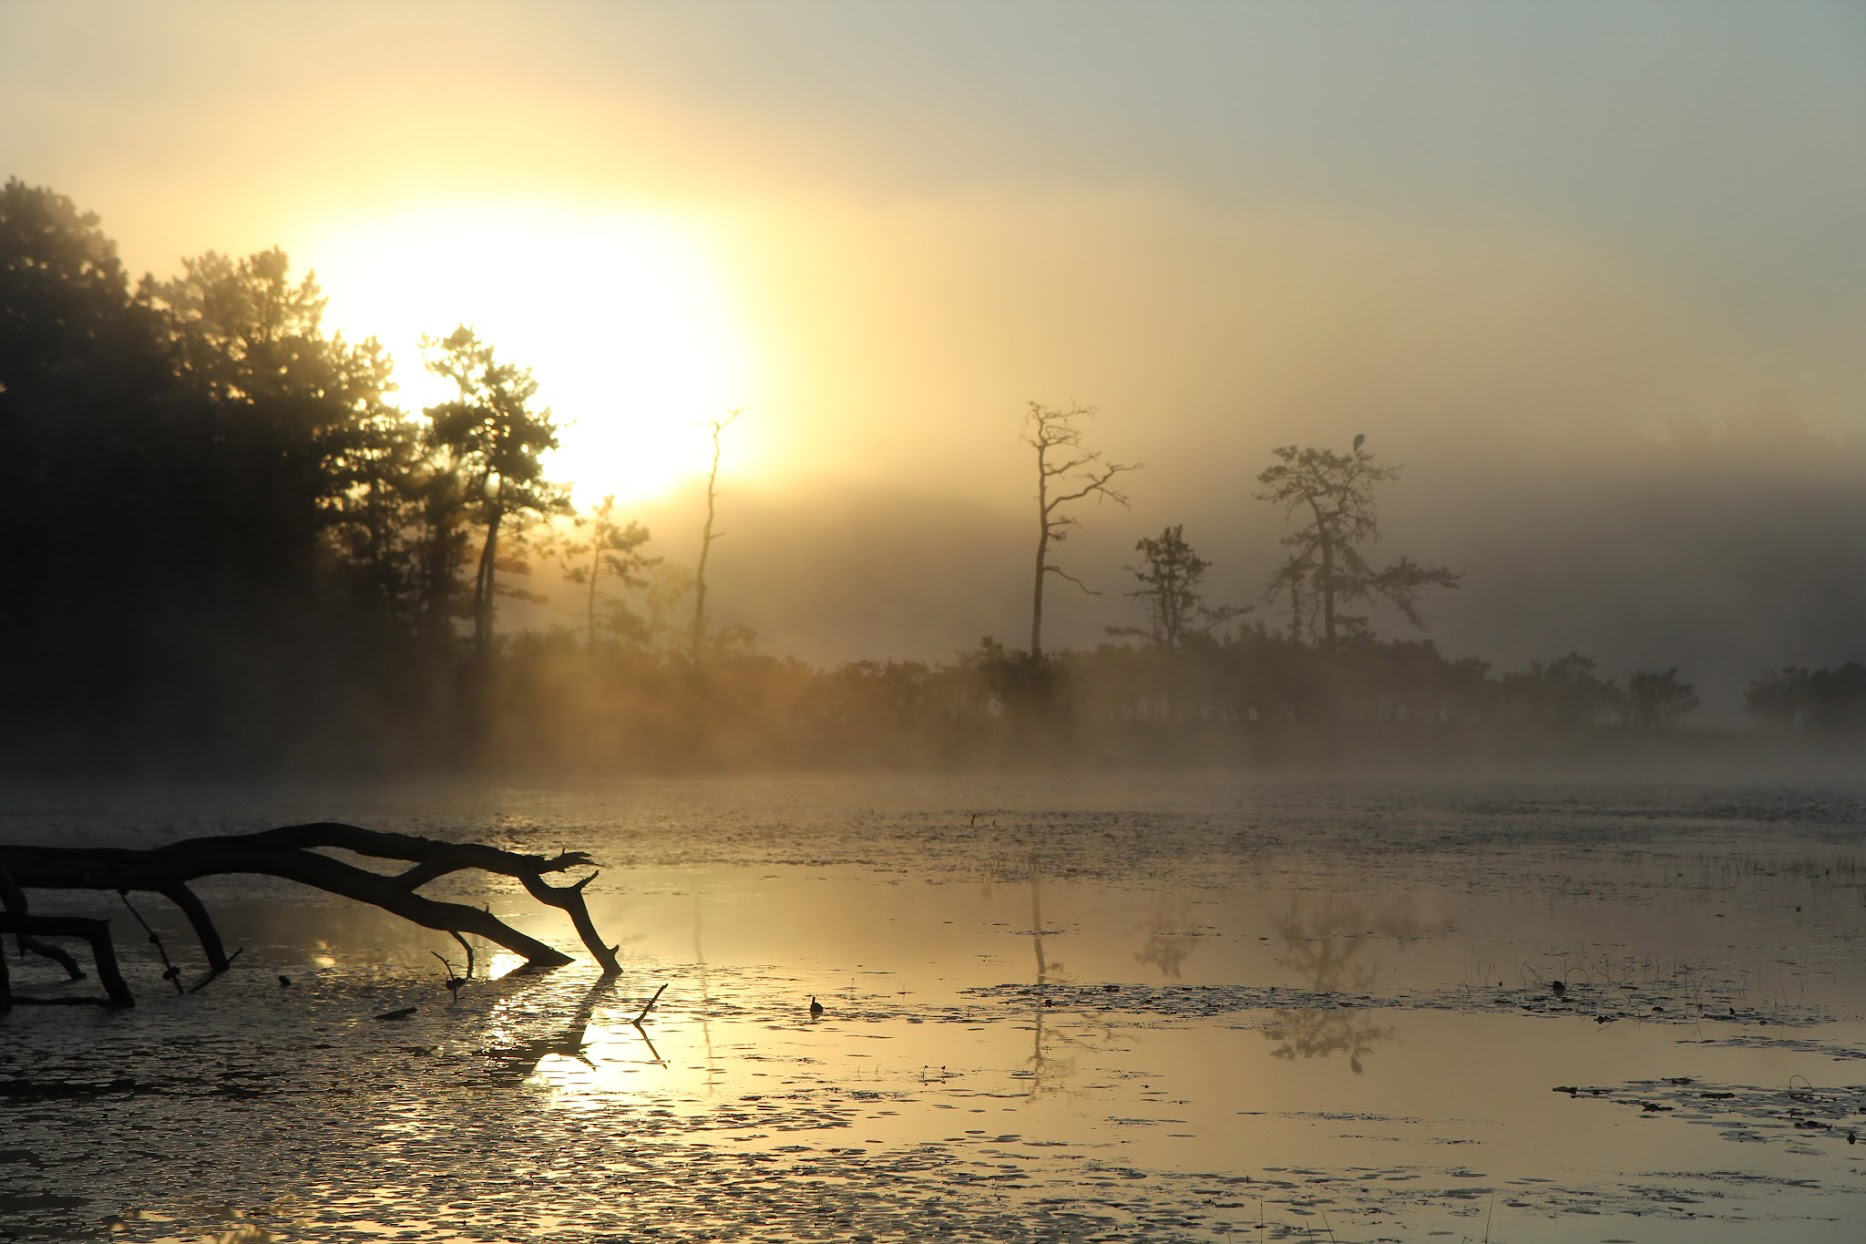 sunrise in Myles Standish State Forest--Taken by Steve Nikola on 8/25/2013 at Three Cornered Pond.